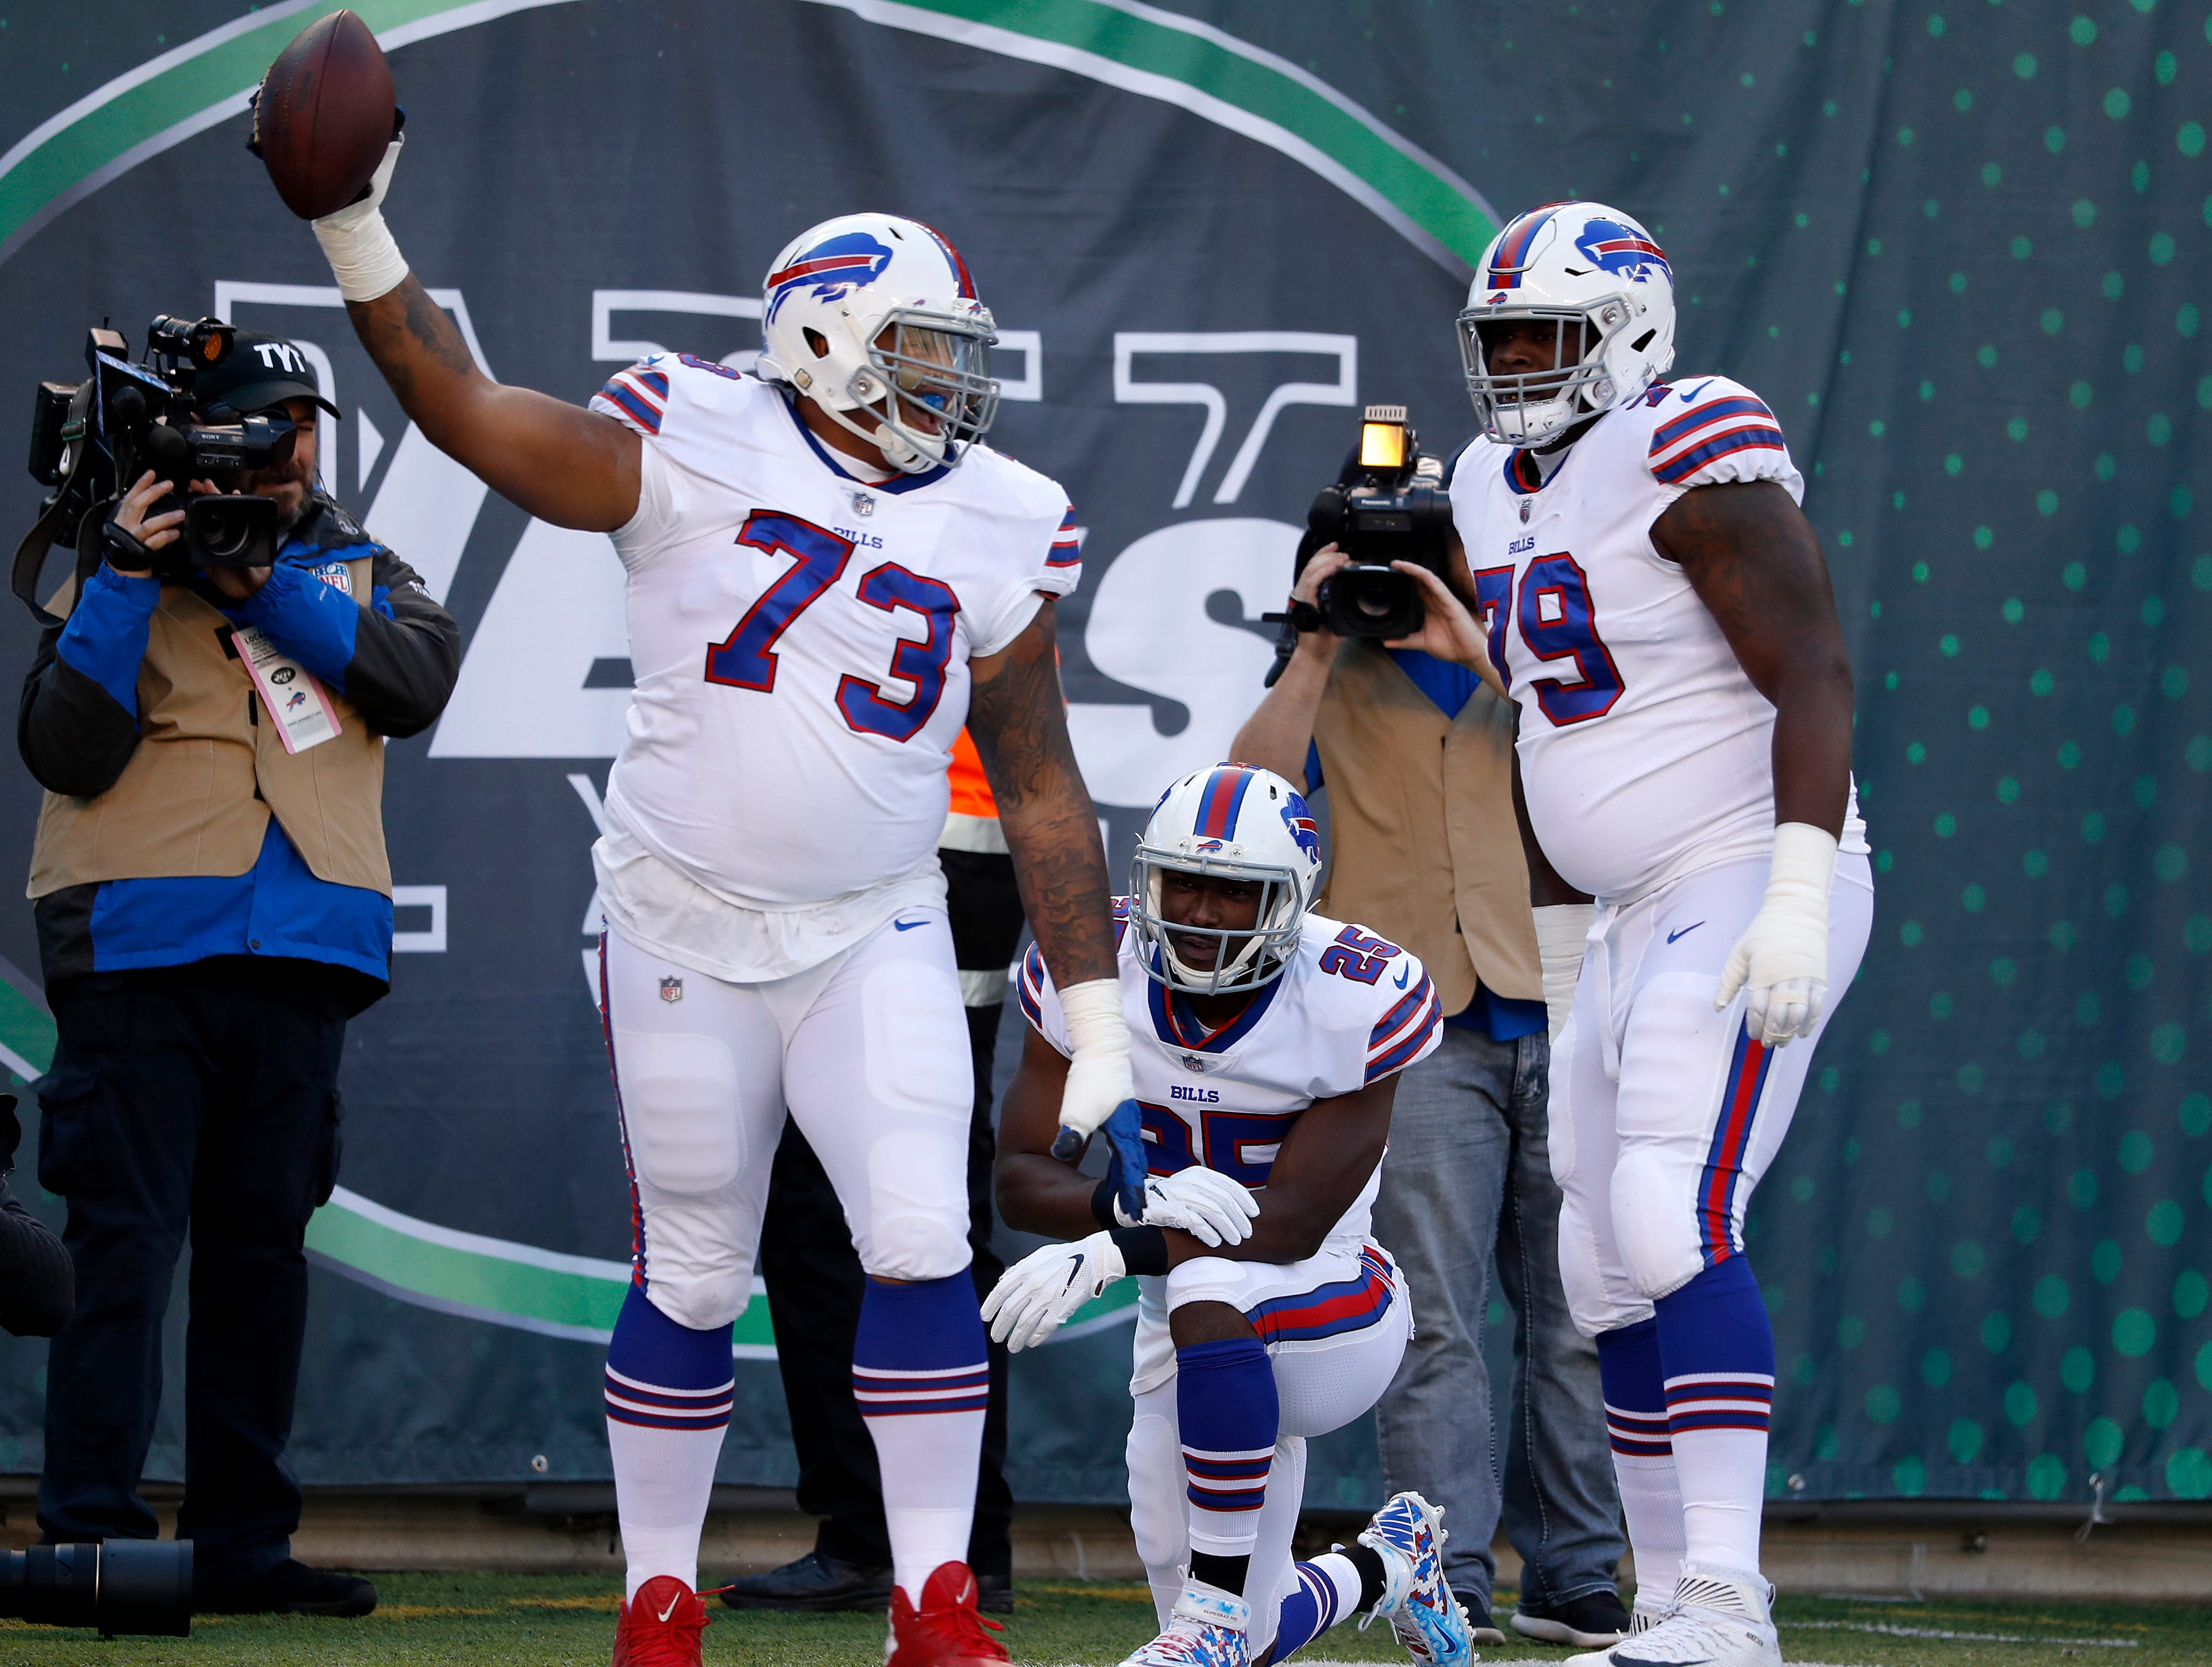 EAST RUTHERFORD, NEW JERSEY - NOVEMBER 11: LeSean McCoy #25 of the Buffalo Bills is congratulated by his teammates Dion Dawkins #73 and Jordan Mills #79 after his first quarter touchdown against the New York Jets at MetLife Stadium on November 11, 2018 in East Rutherford, New Jersey. (Photo by Michael Owens/Getty Images)